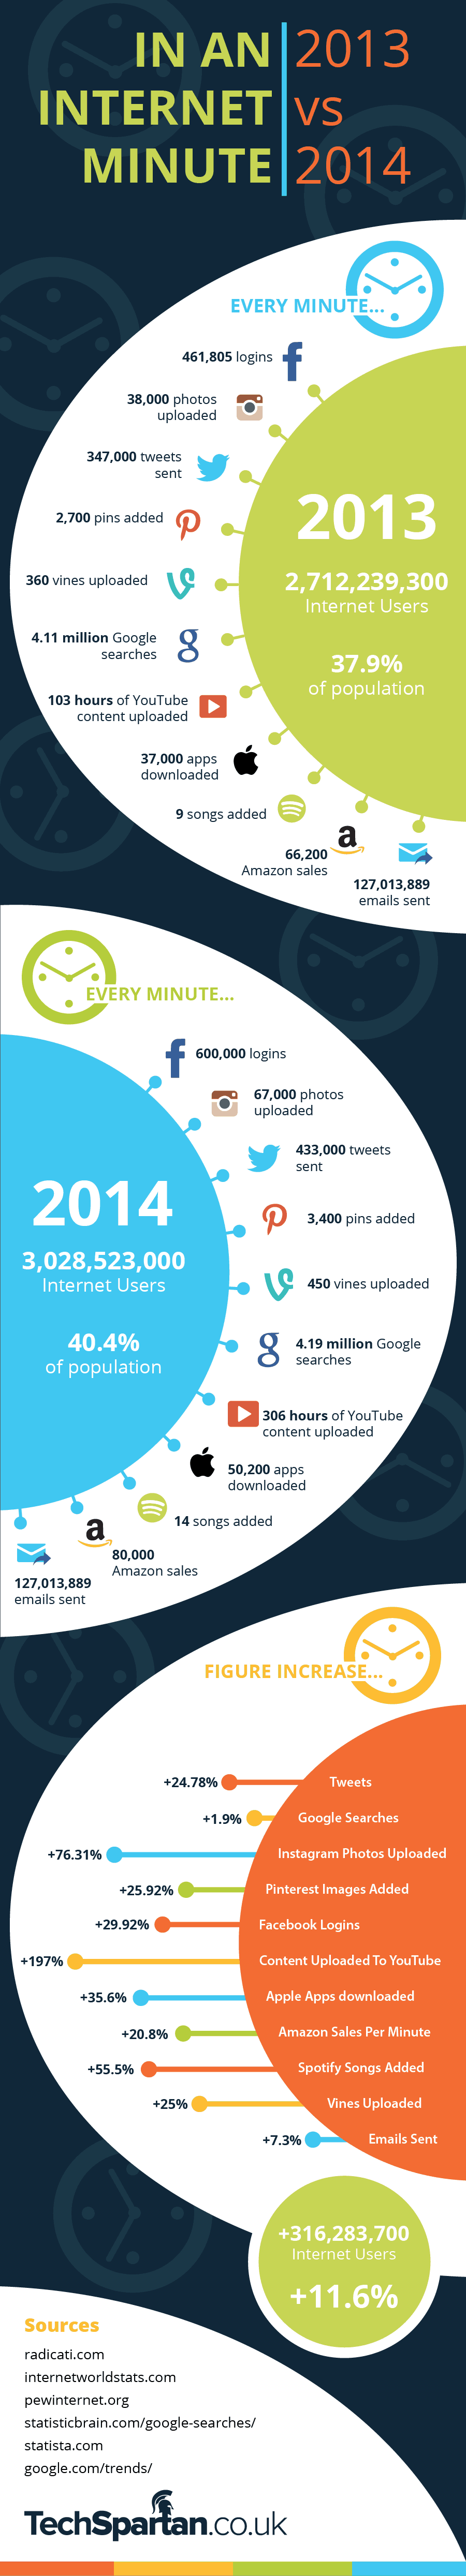 60 seconds online usage - SME Research